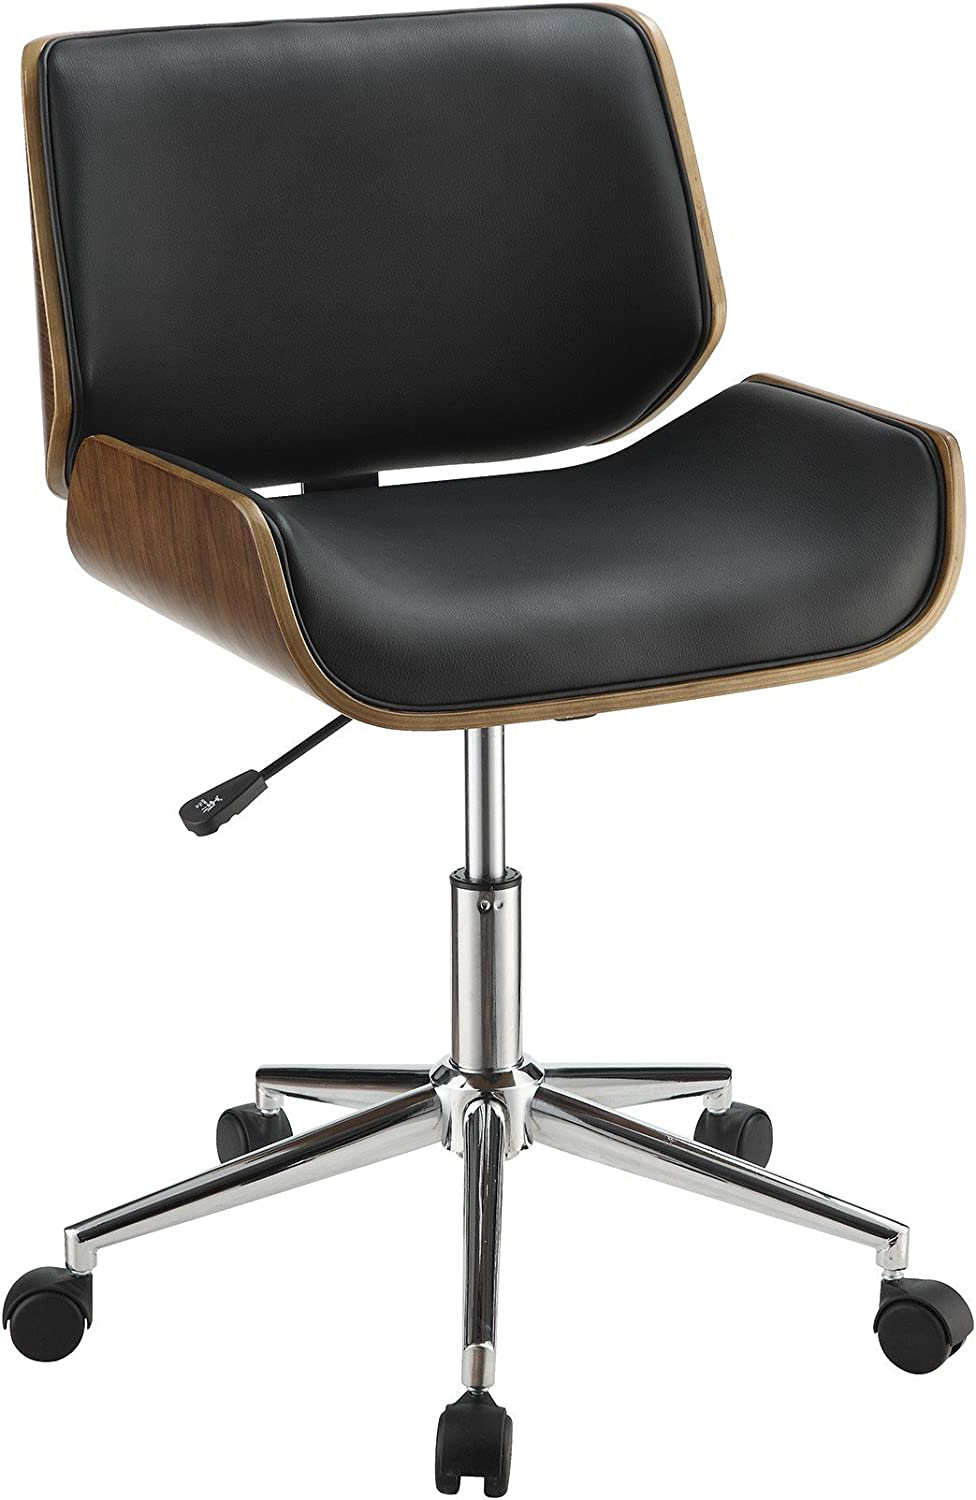 Coaster Home Furnishings Leatherette Office Chair, Black